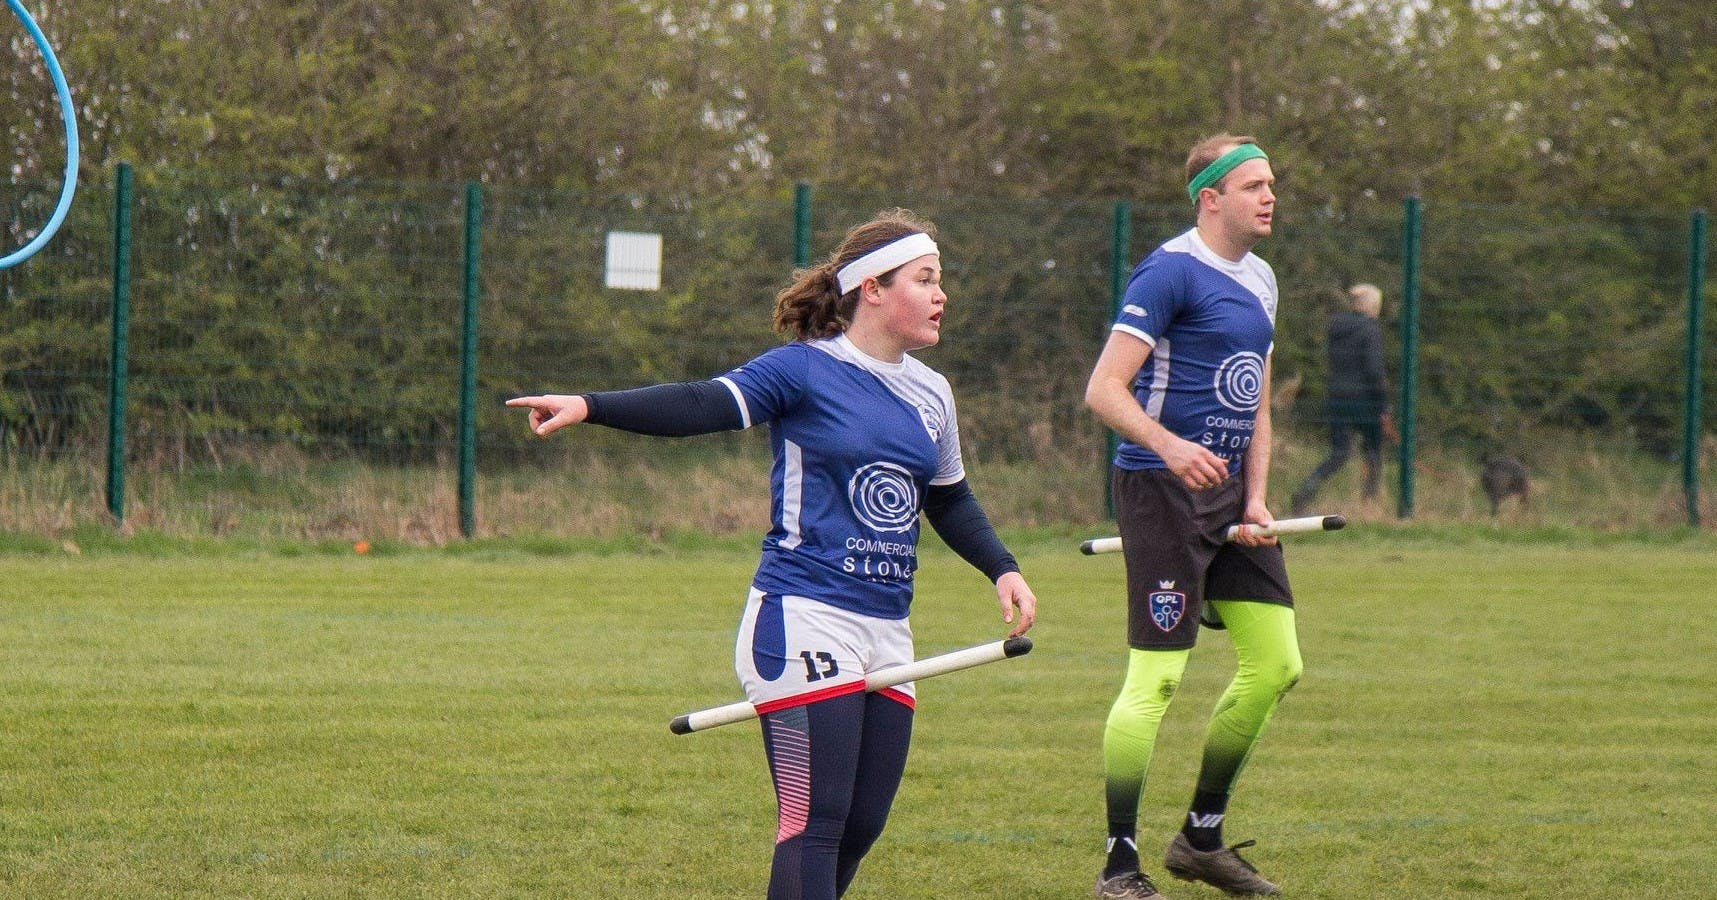 Bex Lowe points to something off-pitch while chasing during a match